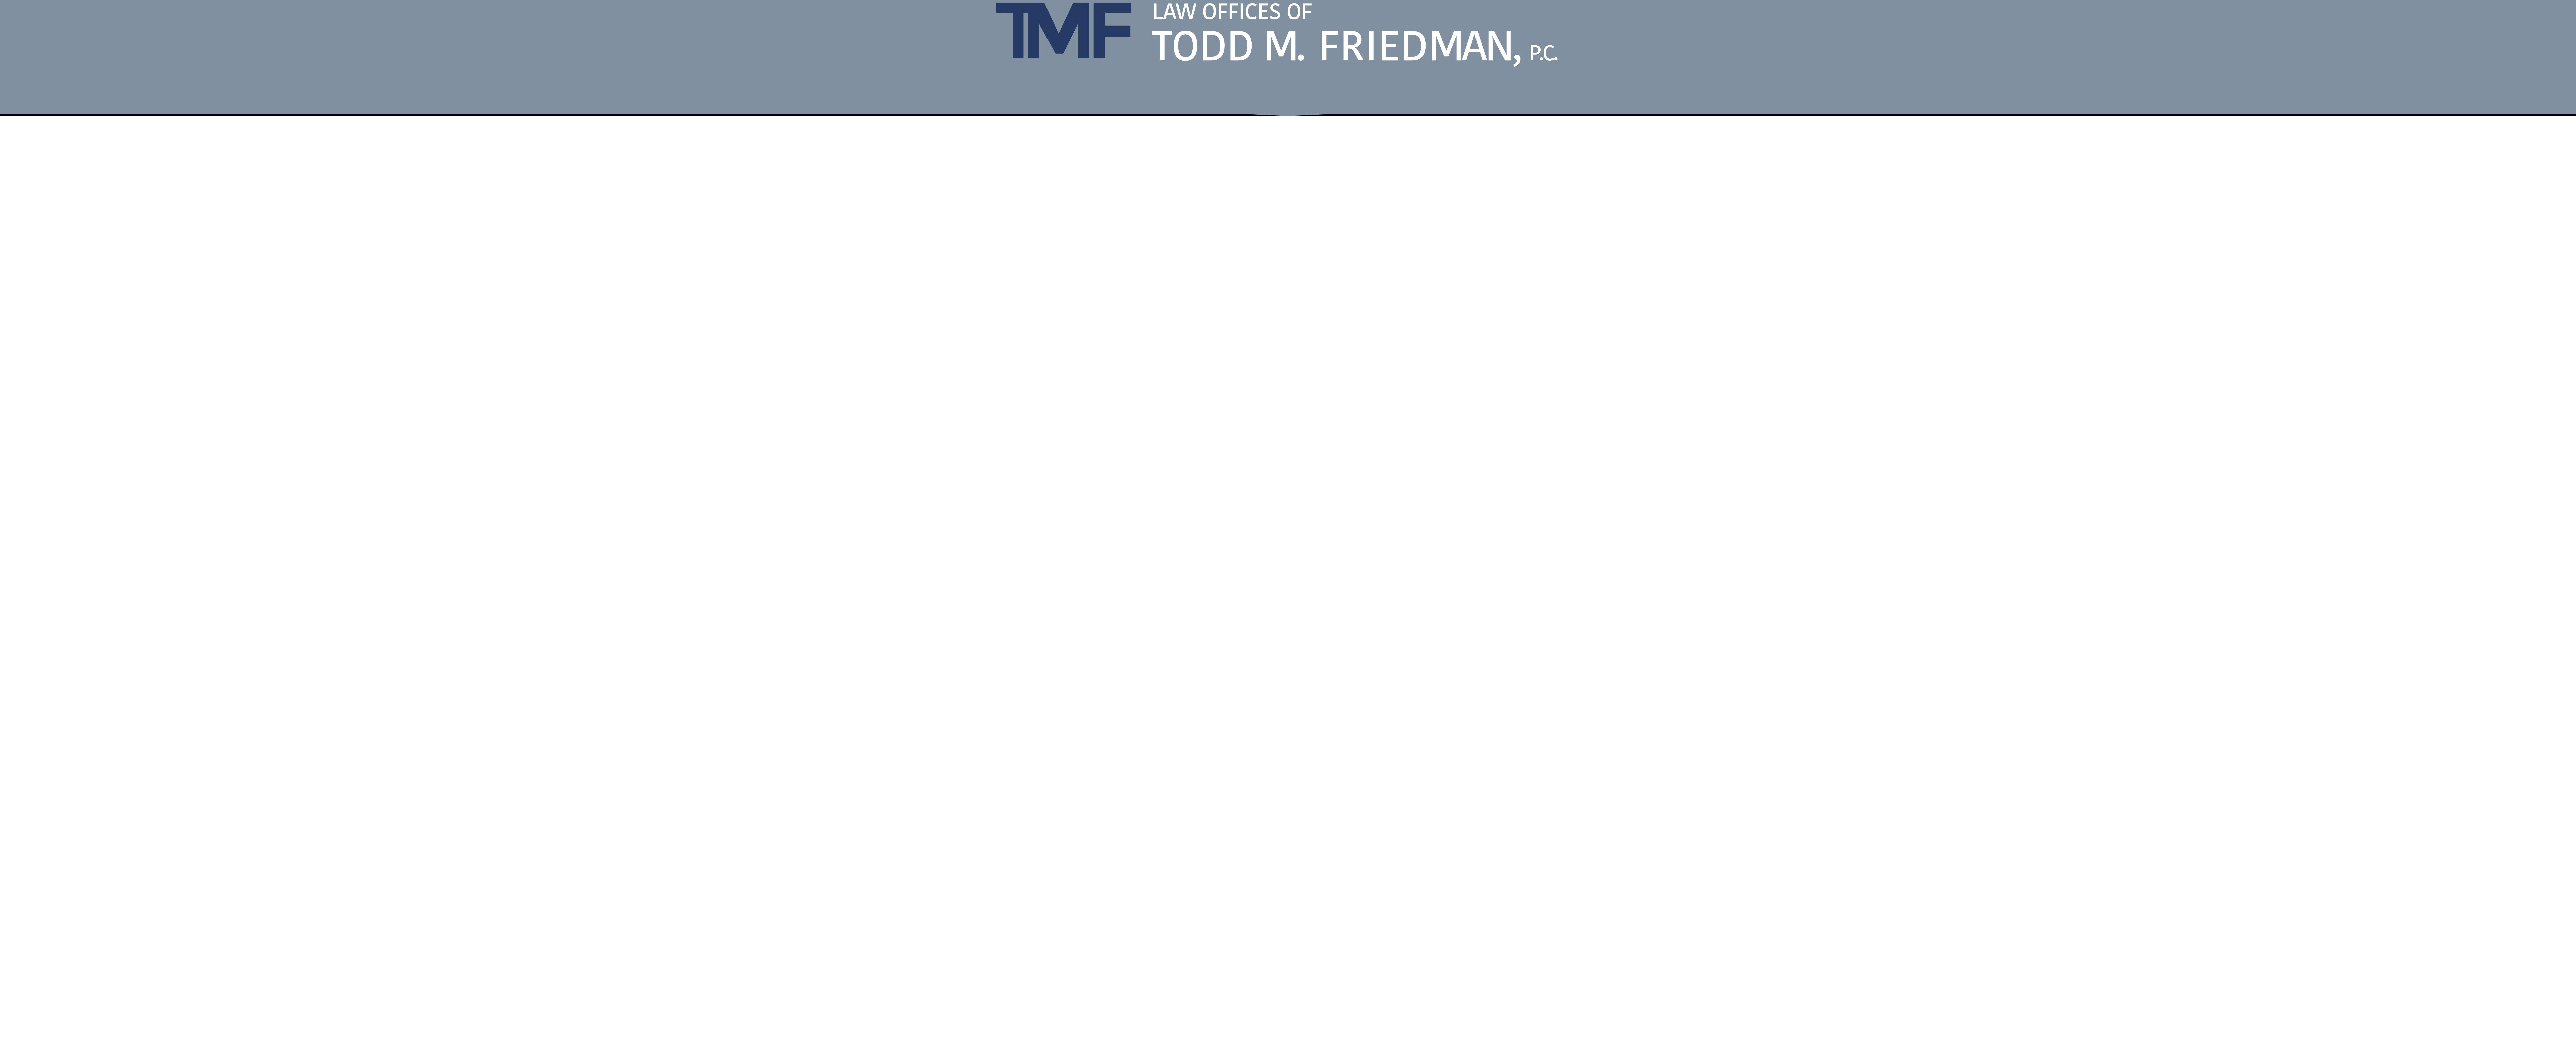 Law Offices of Todd M. Friedman, P.C. - Costa Mesa CA Lawyers